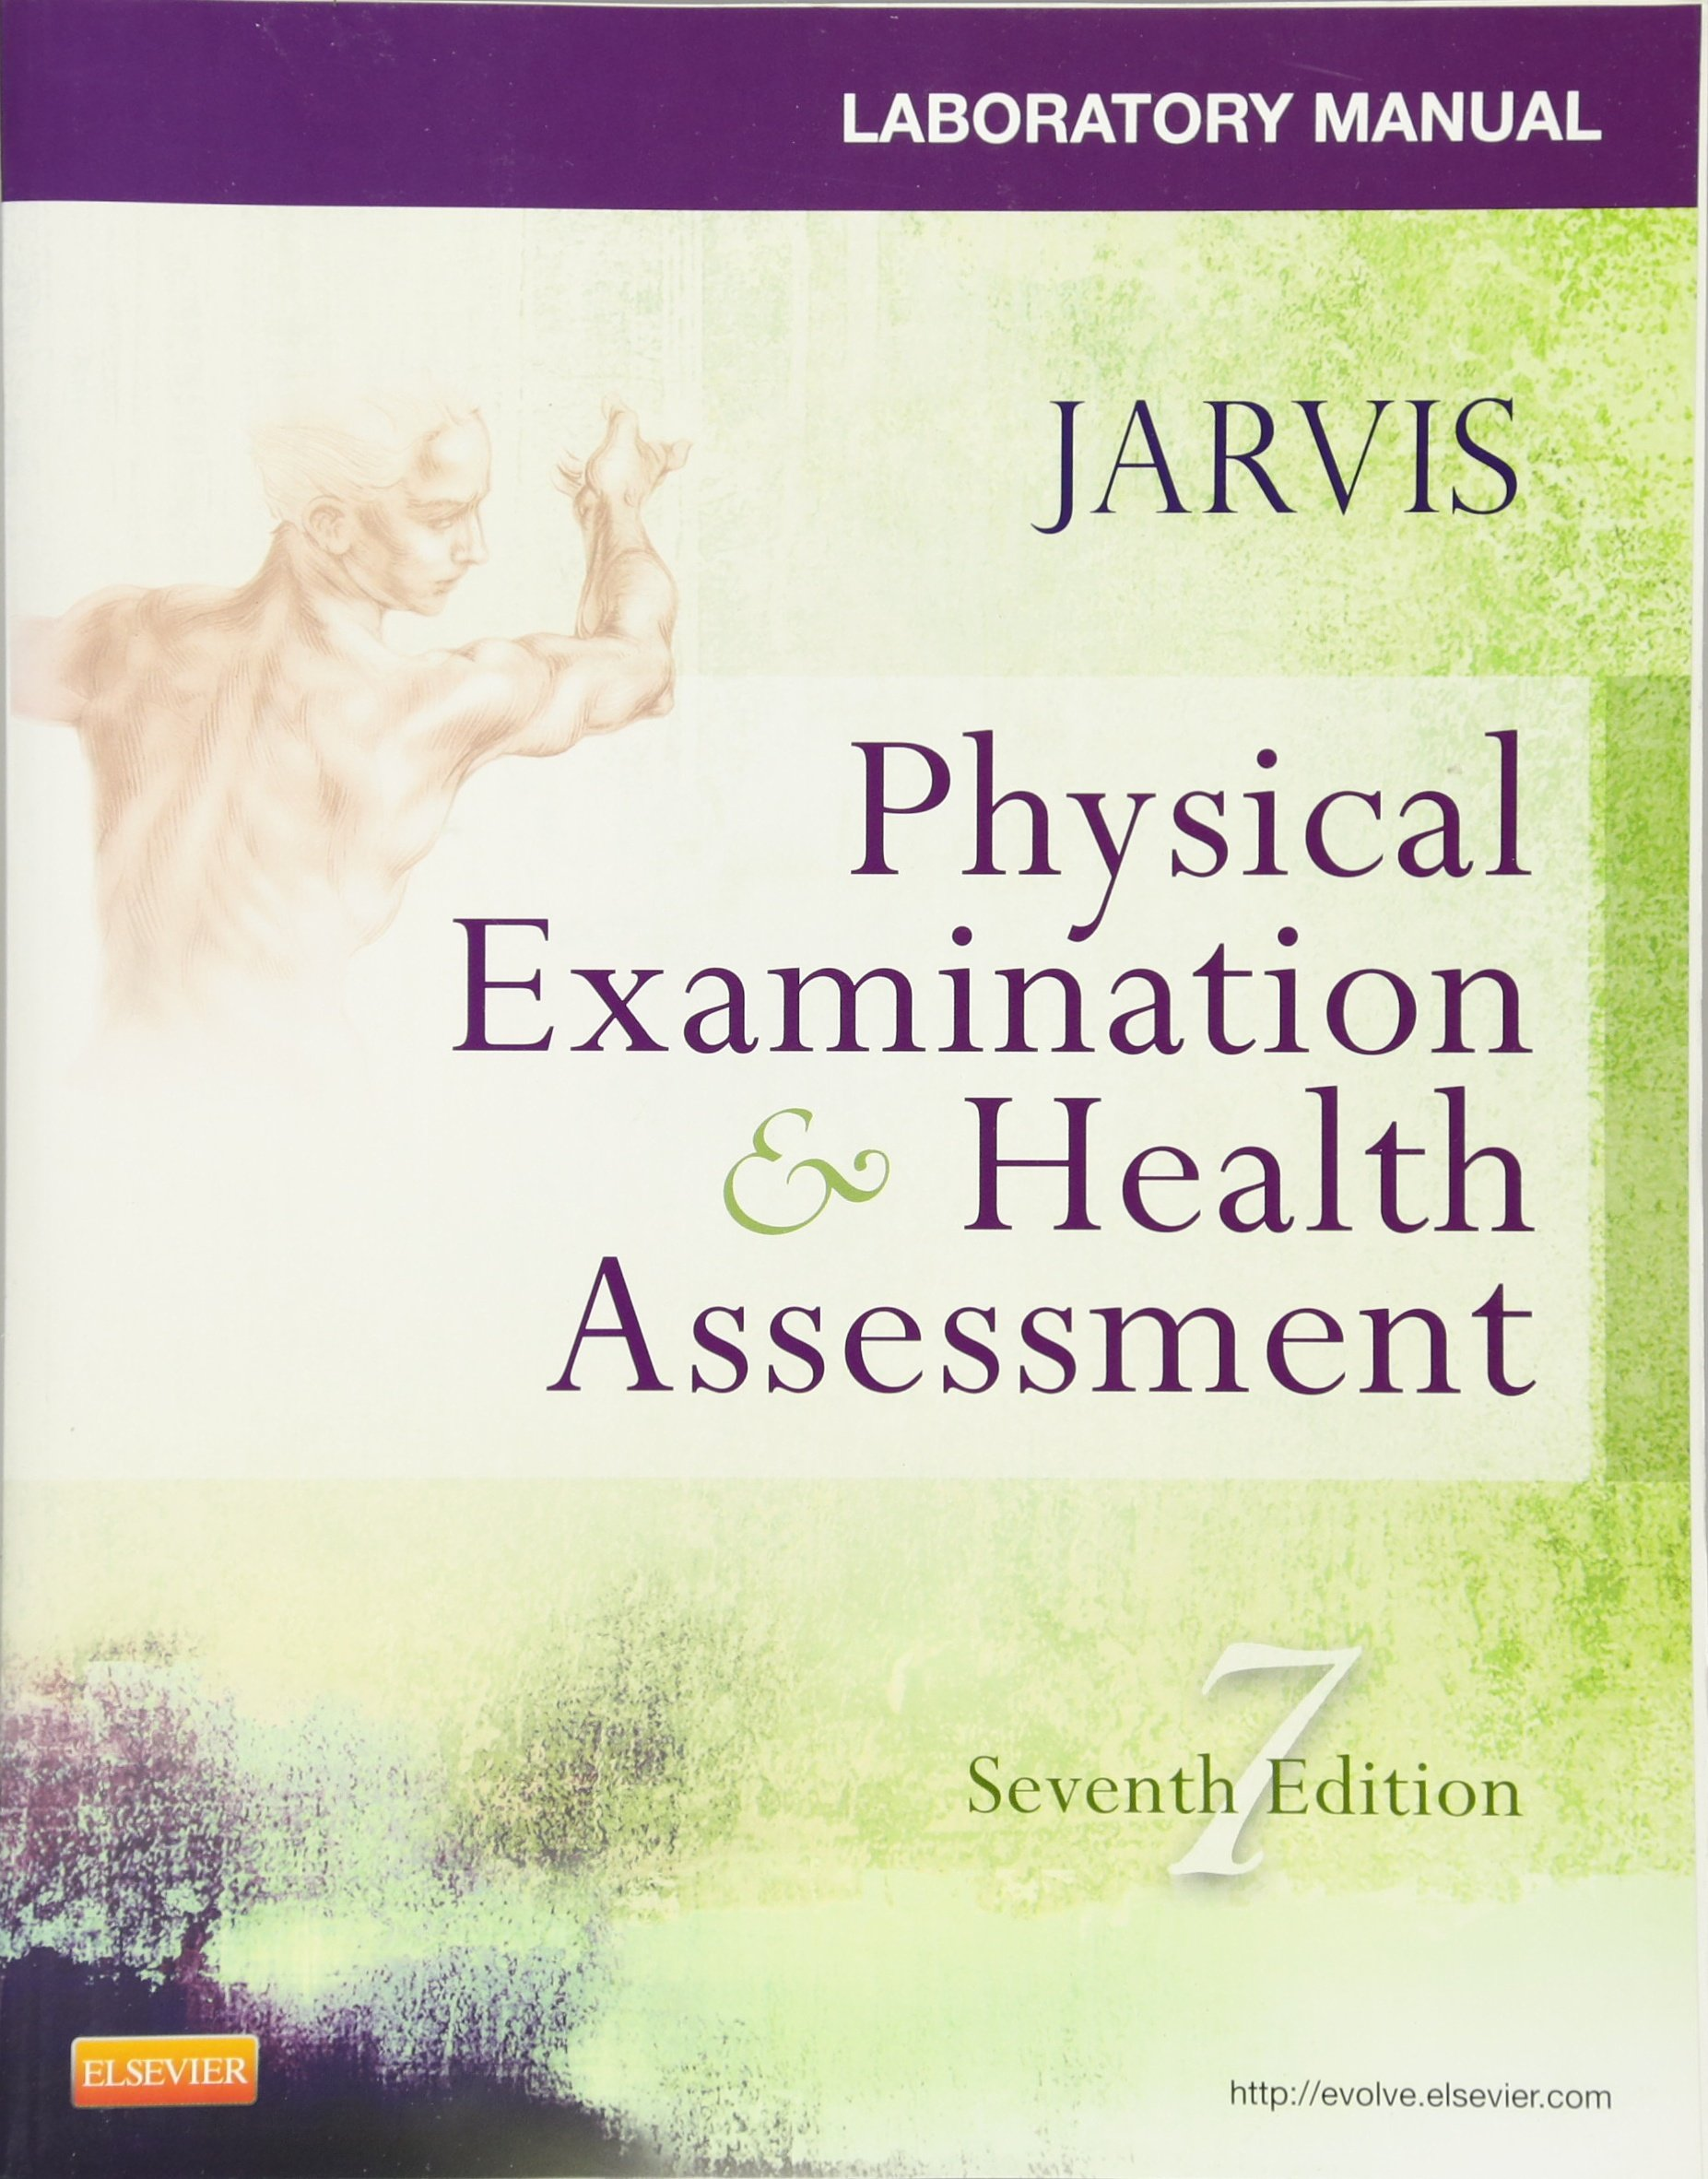 Image OfPhysical Examination & Health Assessment